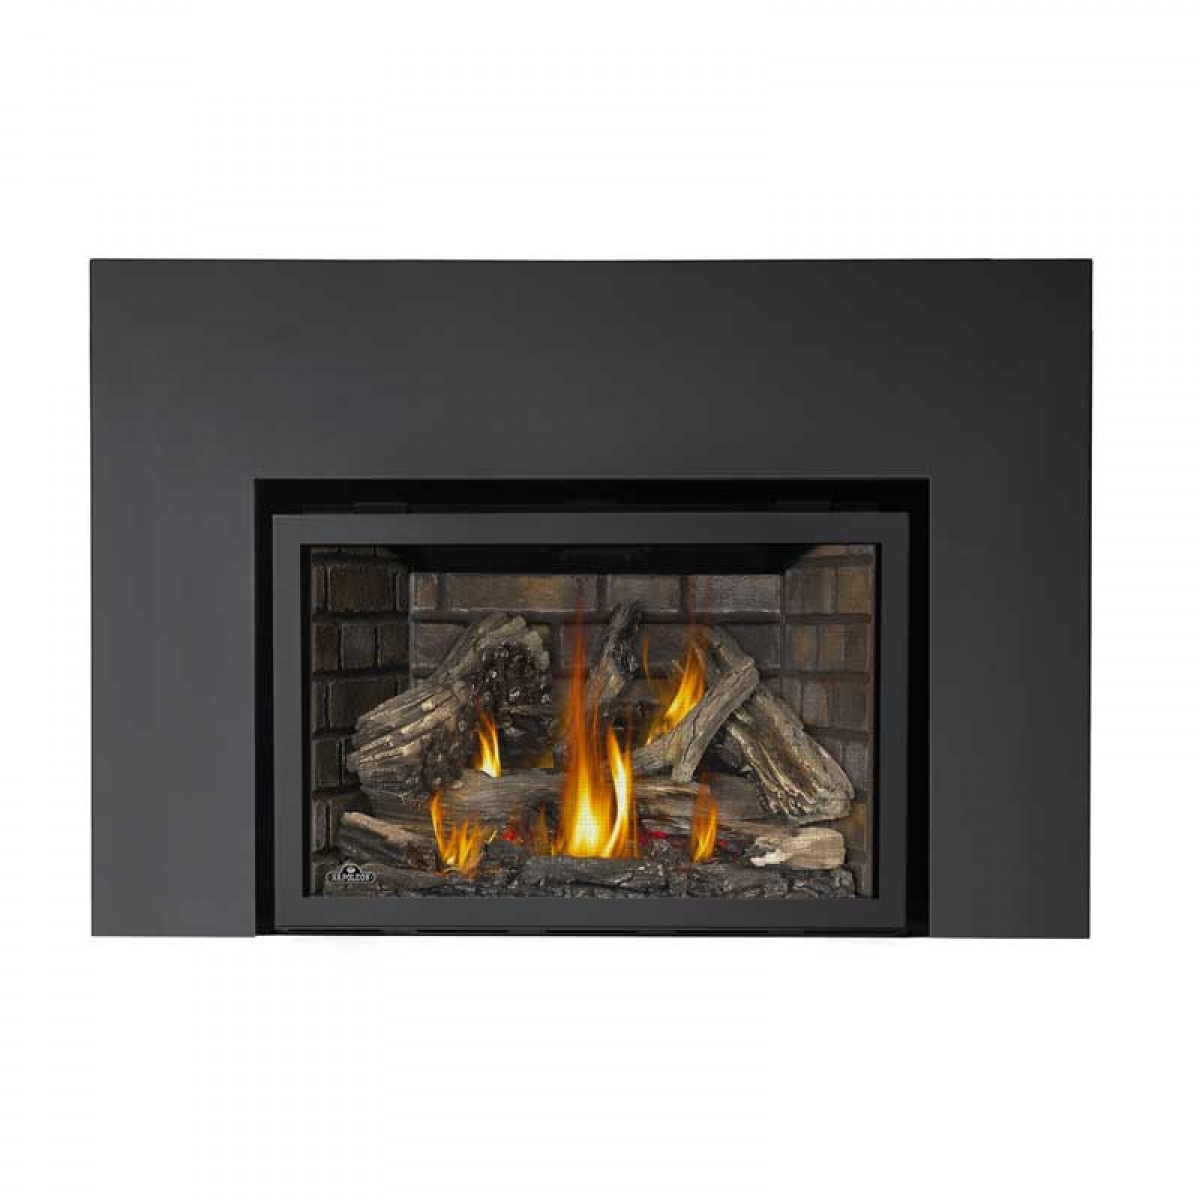 Chimney Free Electric Fireplace Insert Reviews